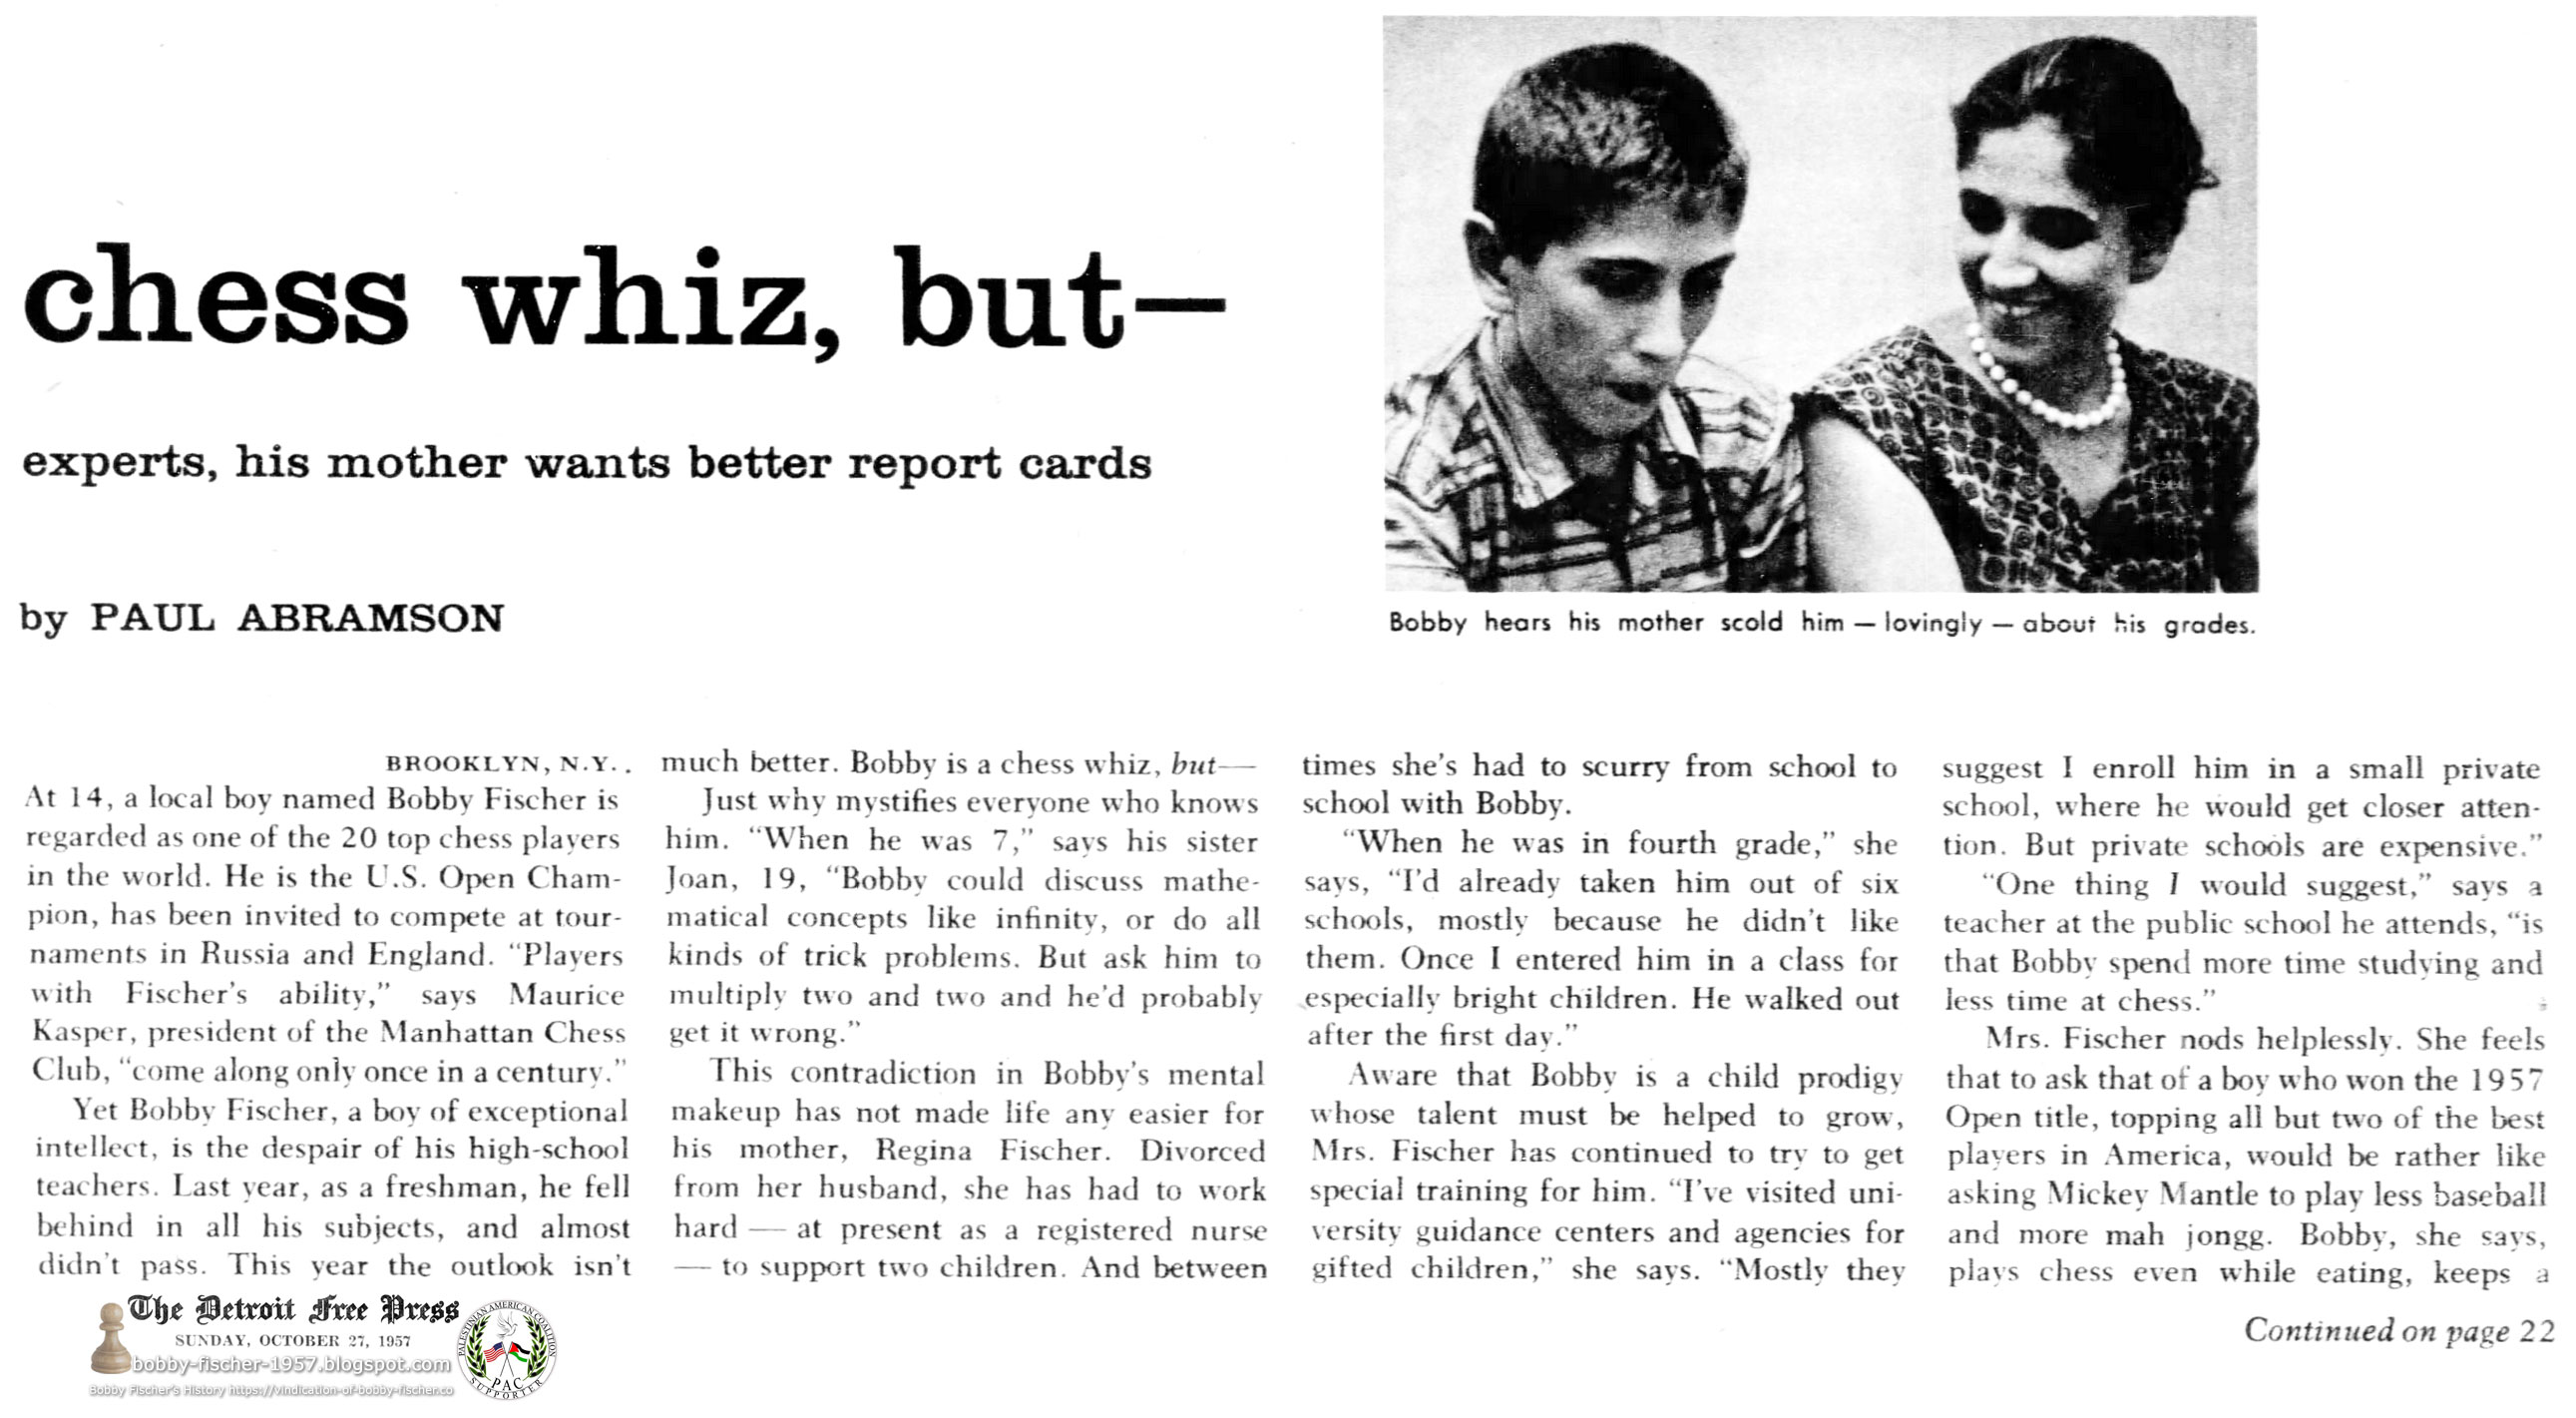 Brooklyn's Bobby Fischer amazes chess experts, his mother wants better report cards